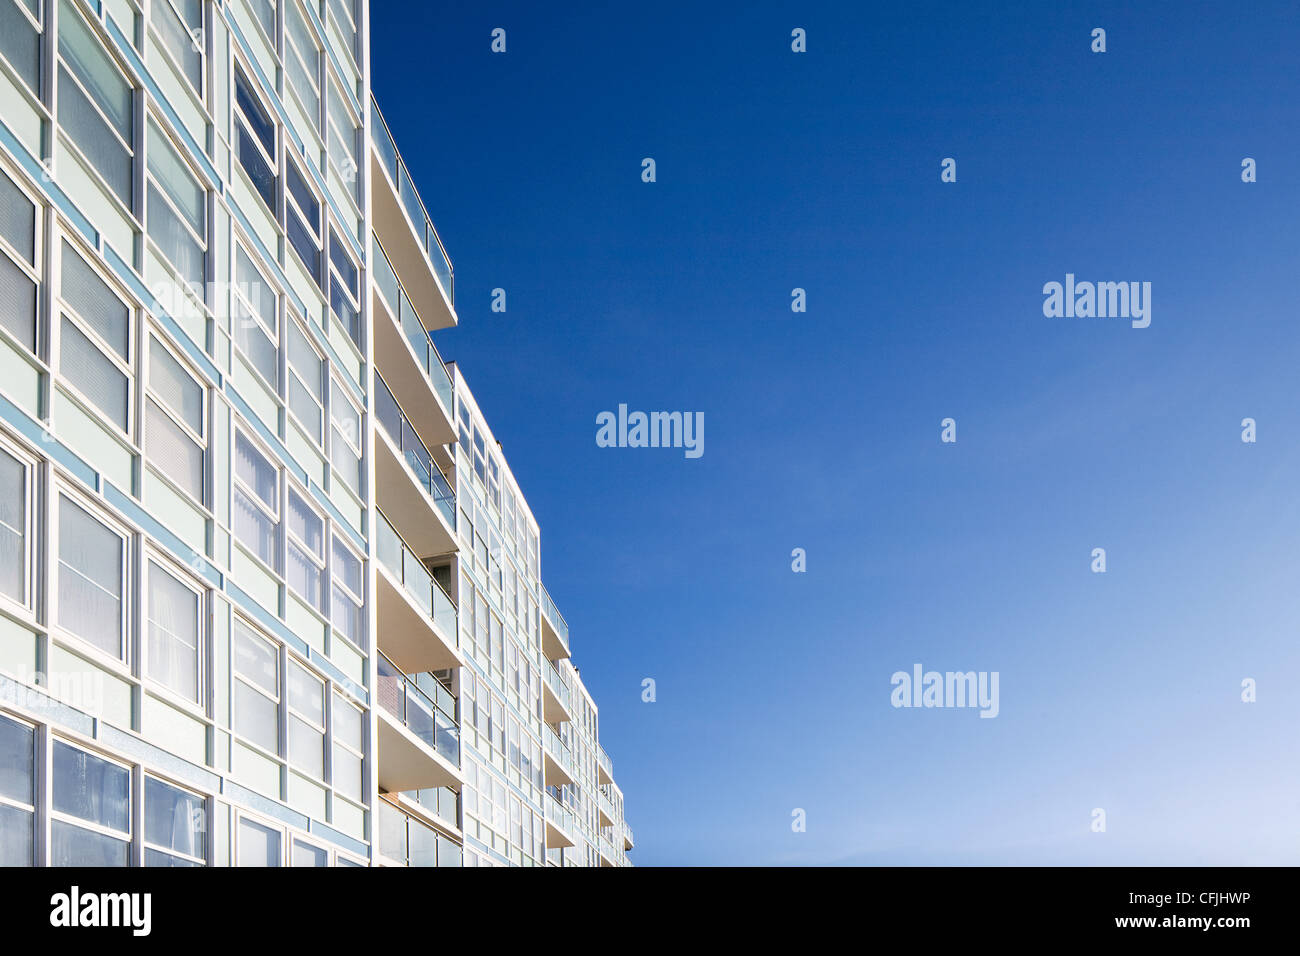 High rise apartments - Stock Image